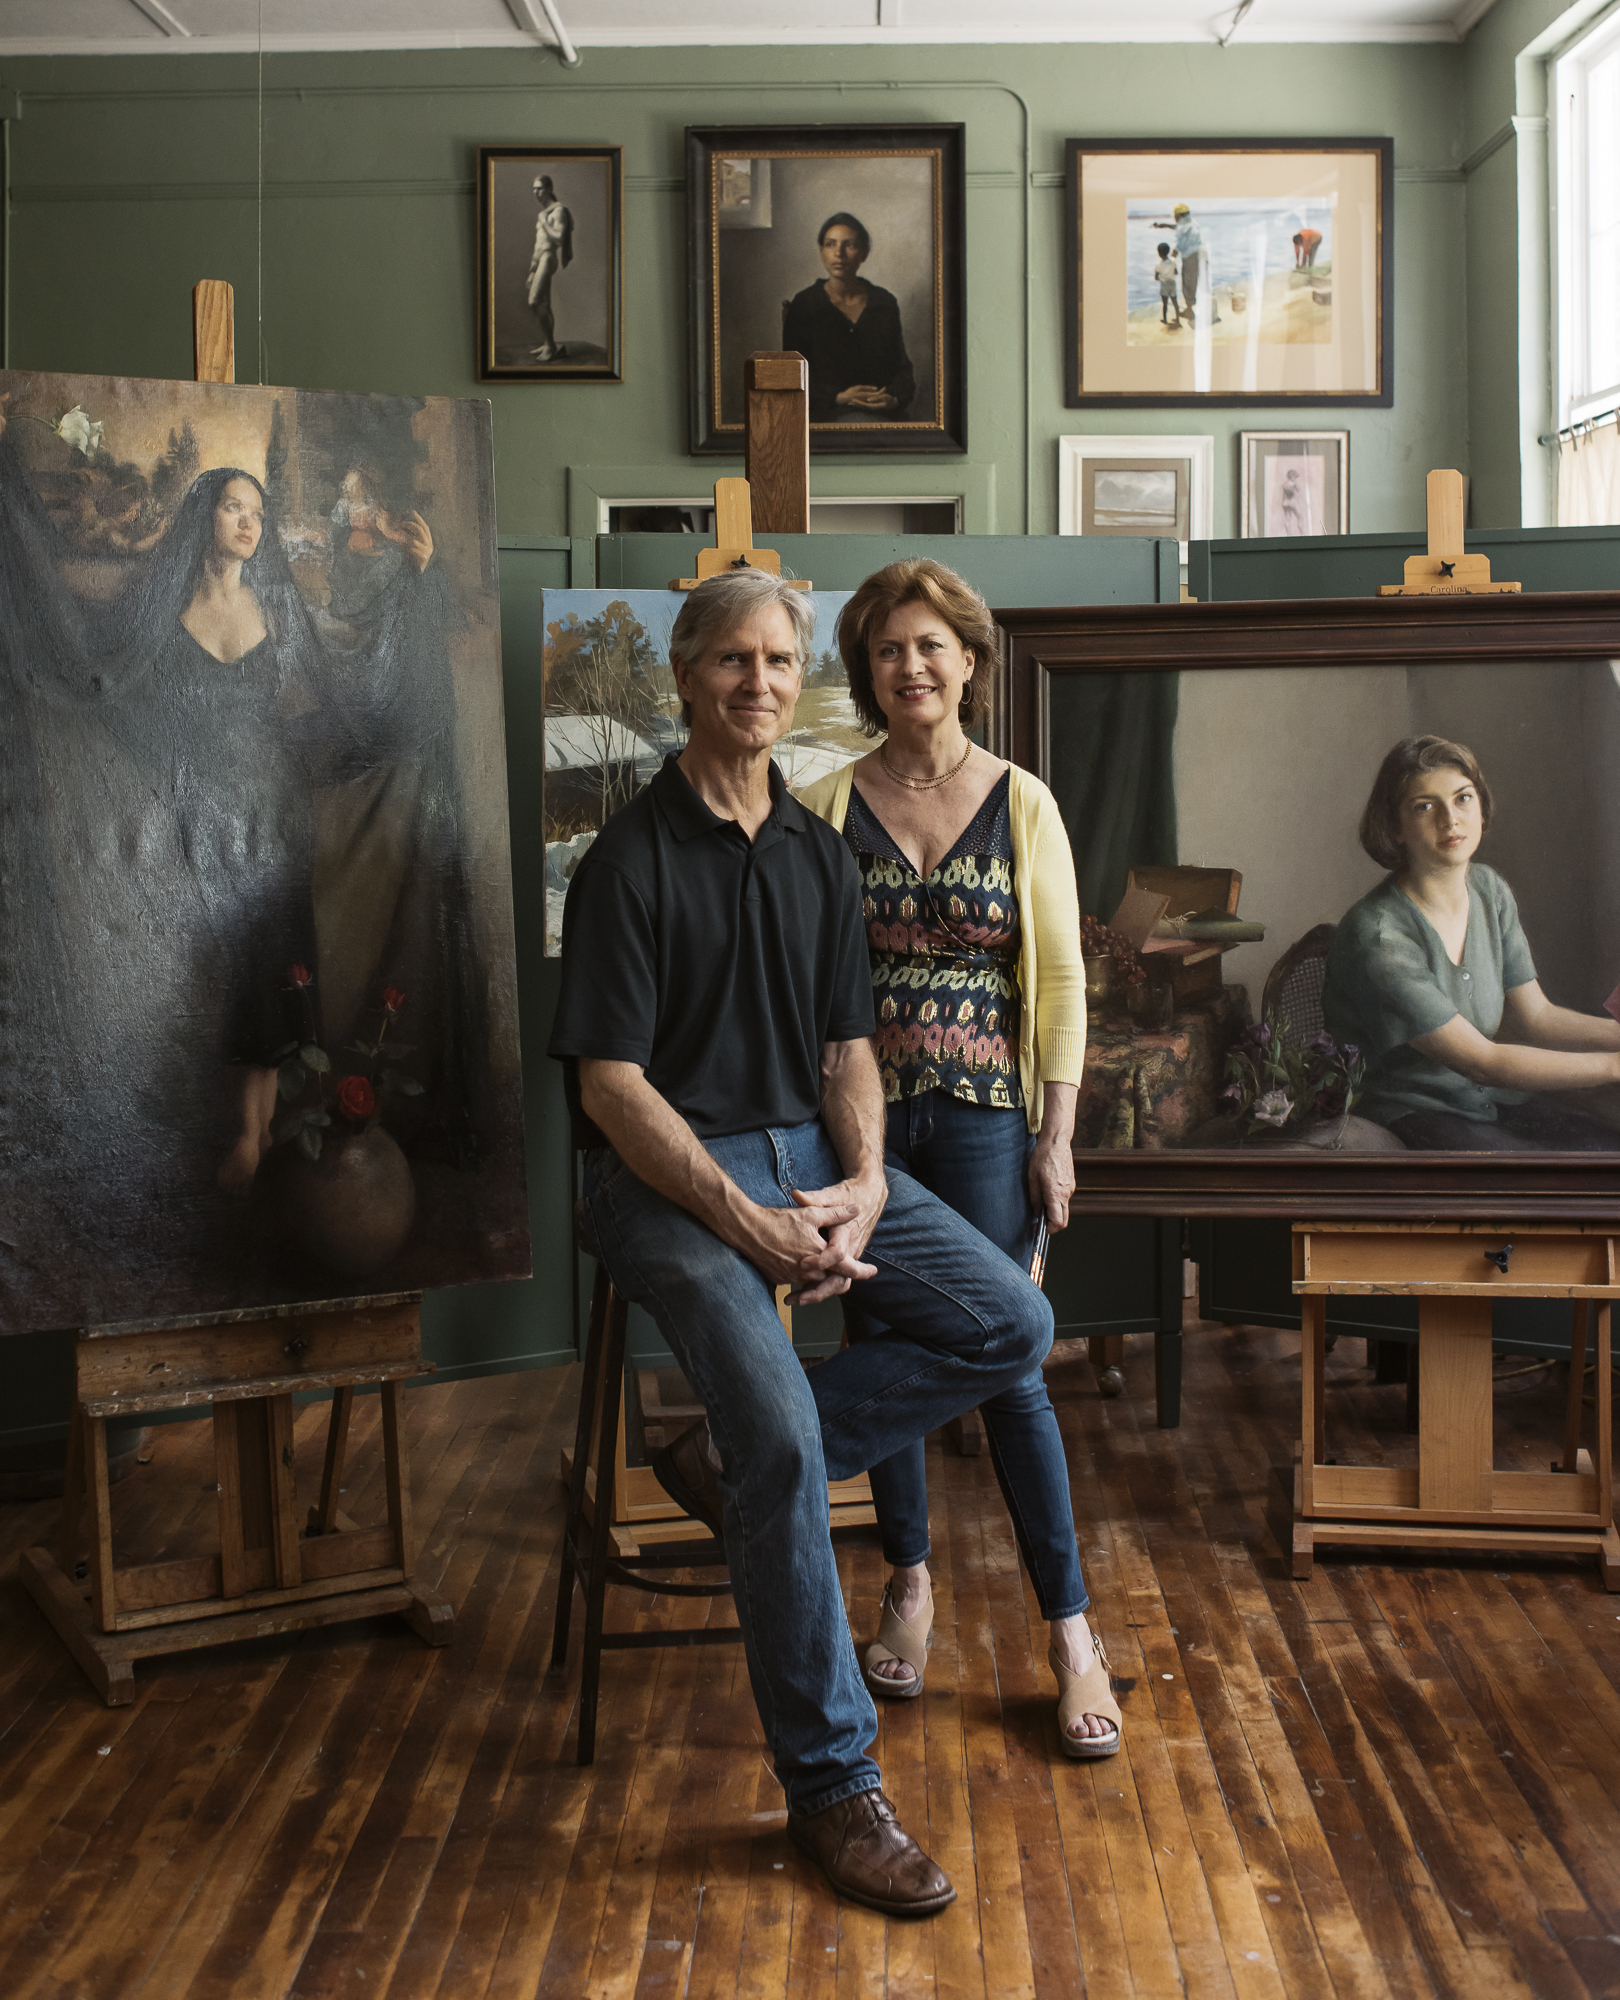 Michele Jim Ostland Asheville Made Magazine Jack Sorokin Flame Artist Marshall commercial Photography editorial Asheville magazine cover 2018 july enviromental portraiture portrait couple